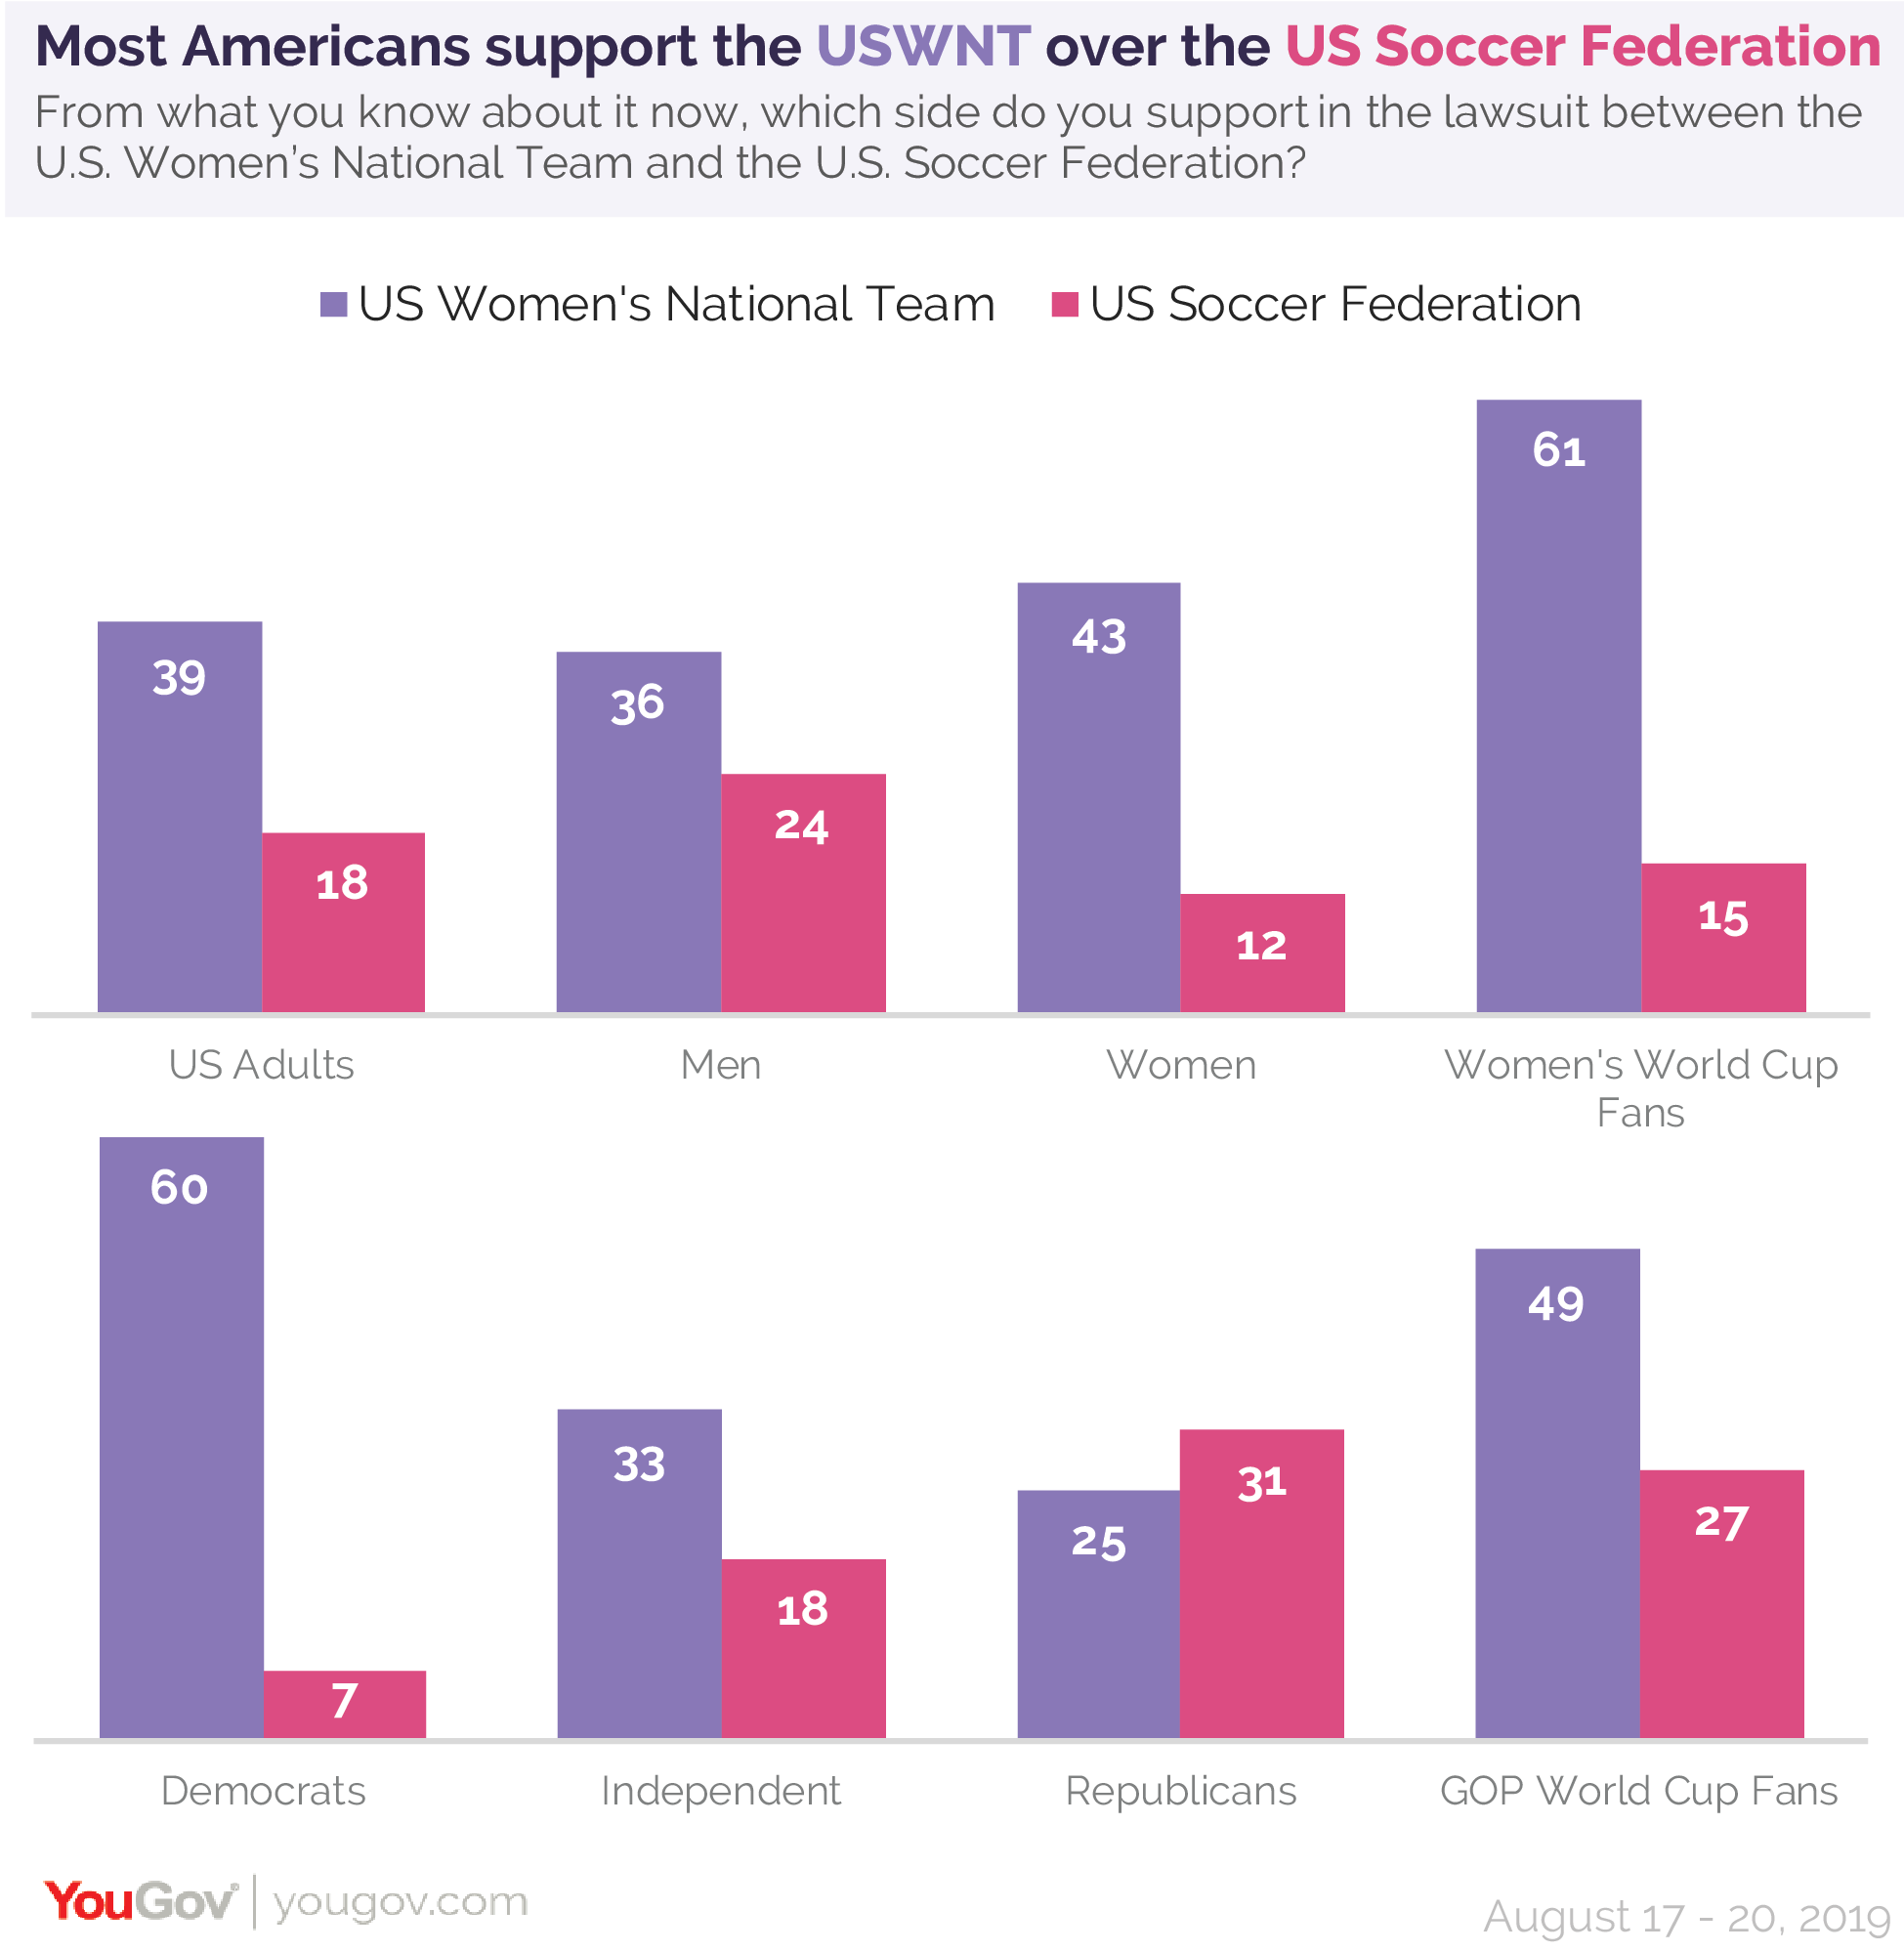 Most Americans support the USWNT over the US Soccer Federation